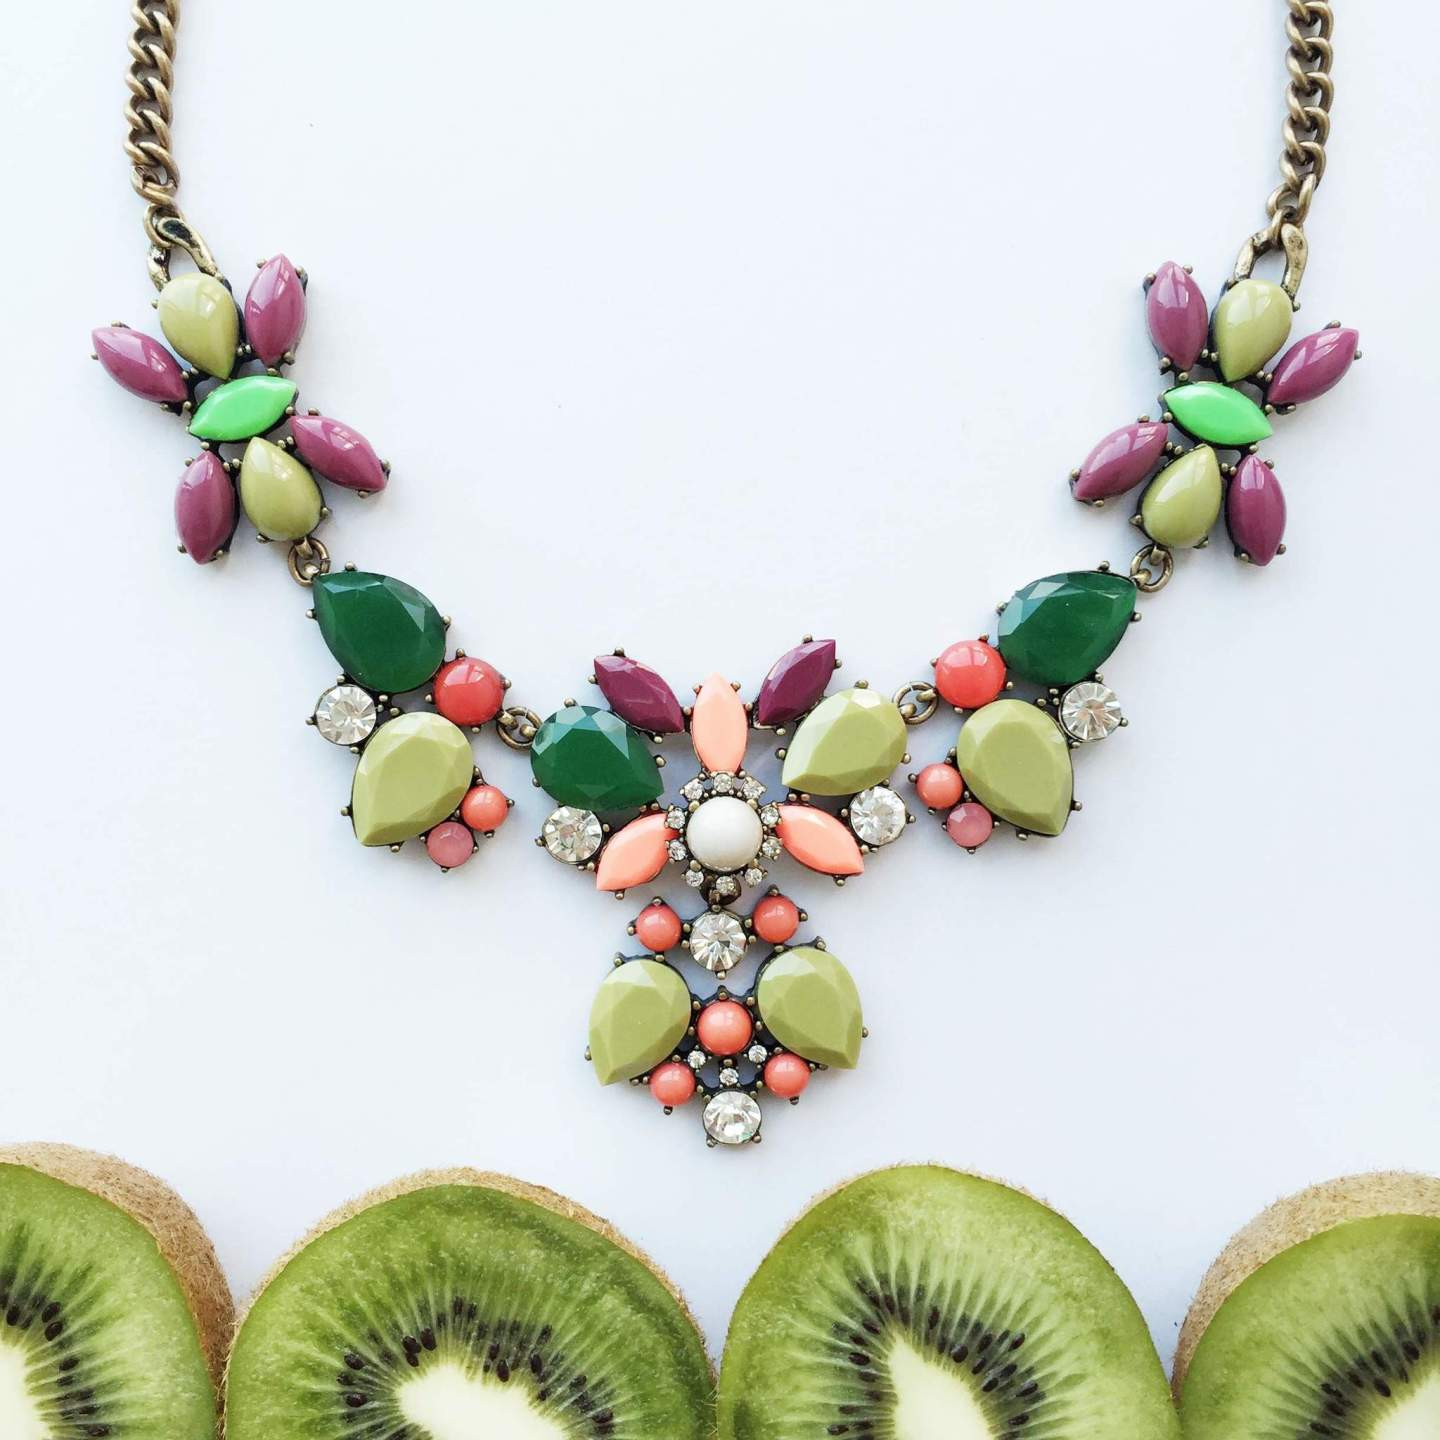 Photo Styling_Fruit Jewelry_3